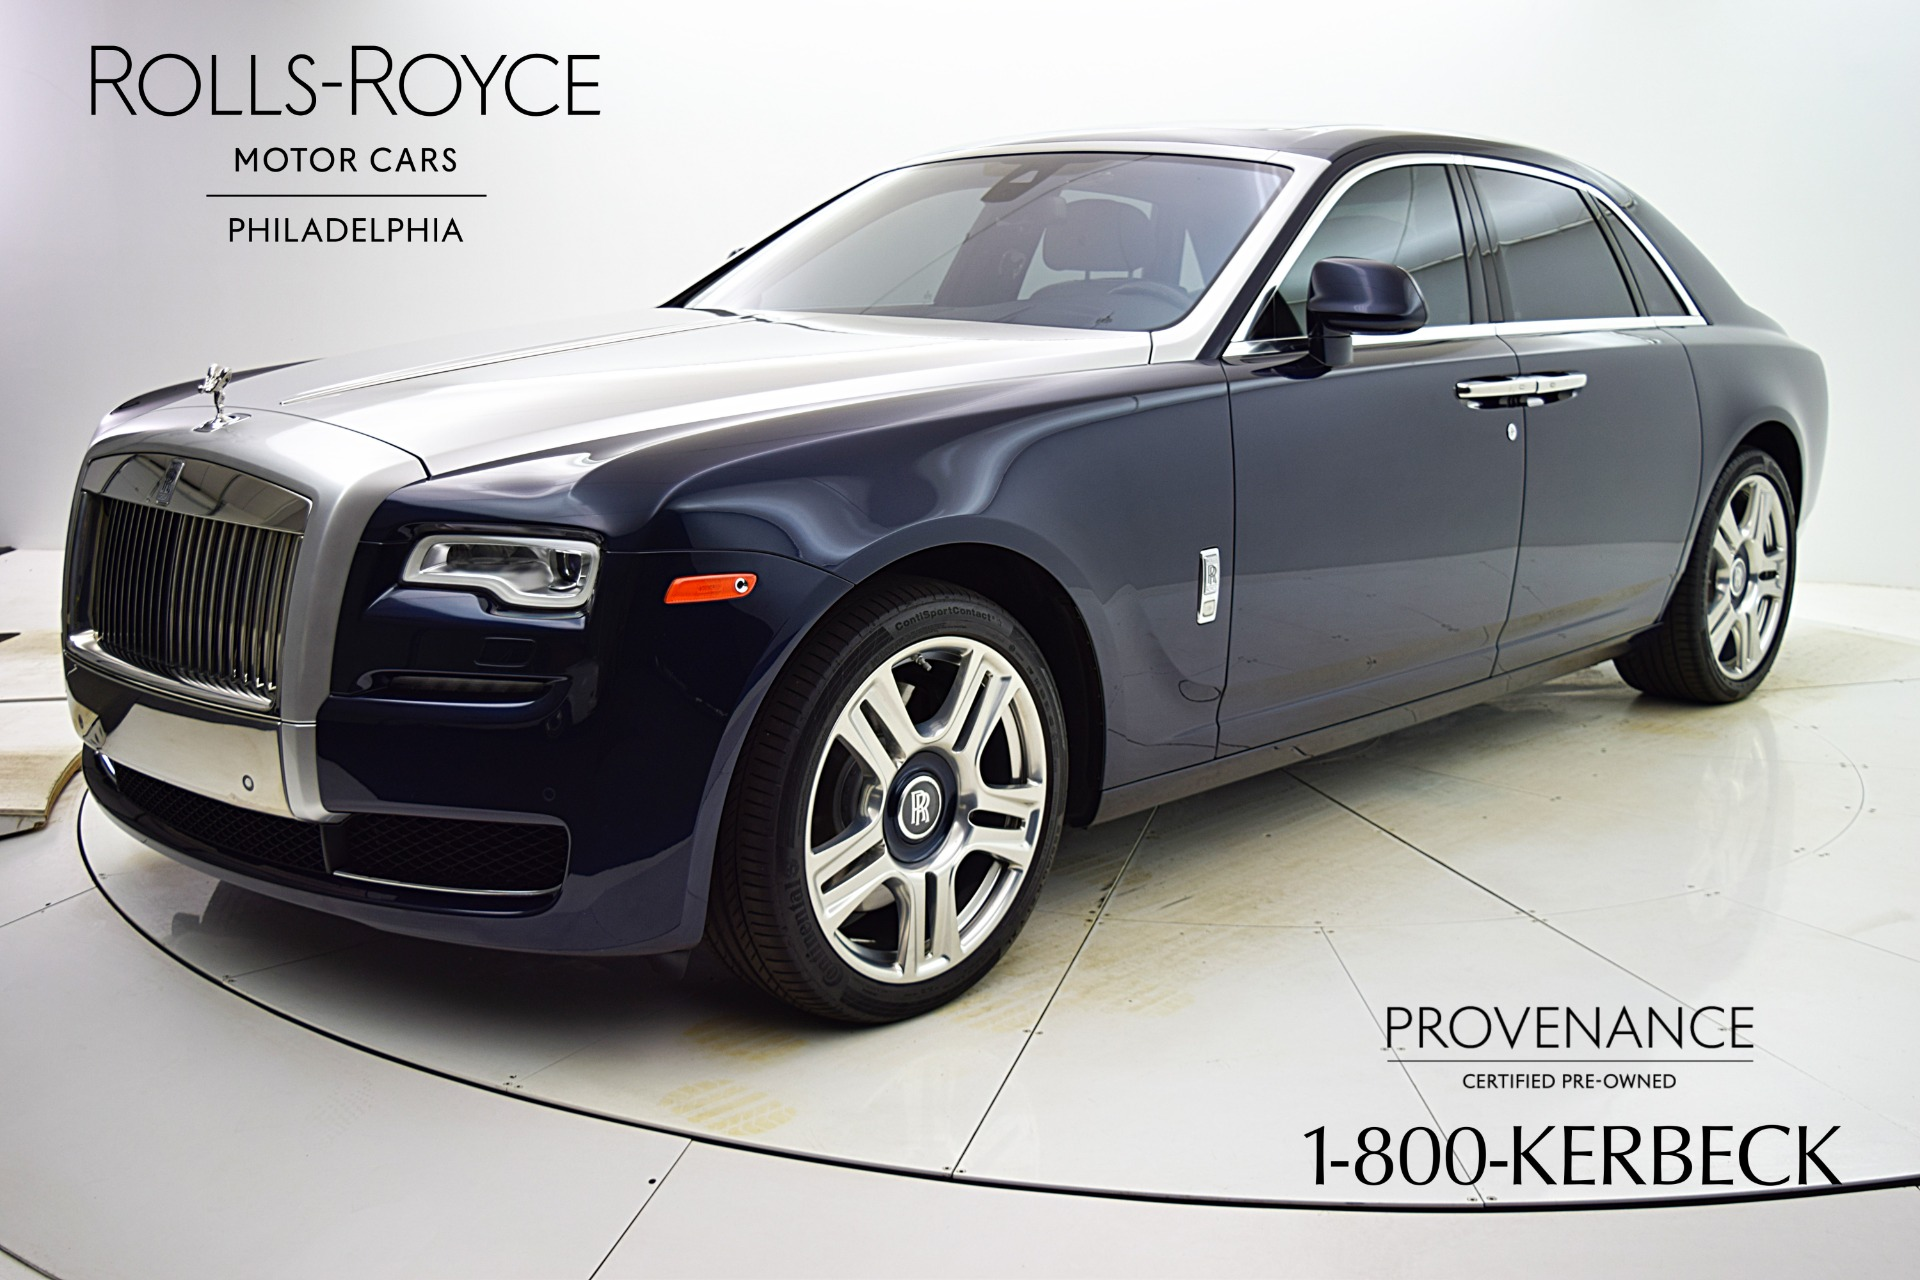 Used 2016 Rolls-Royce Ghost for sale Sold at F.C. Kerbeck Aston Martin in Palmyra NJ 08065 2